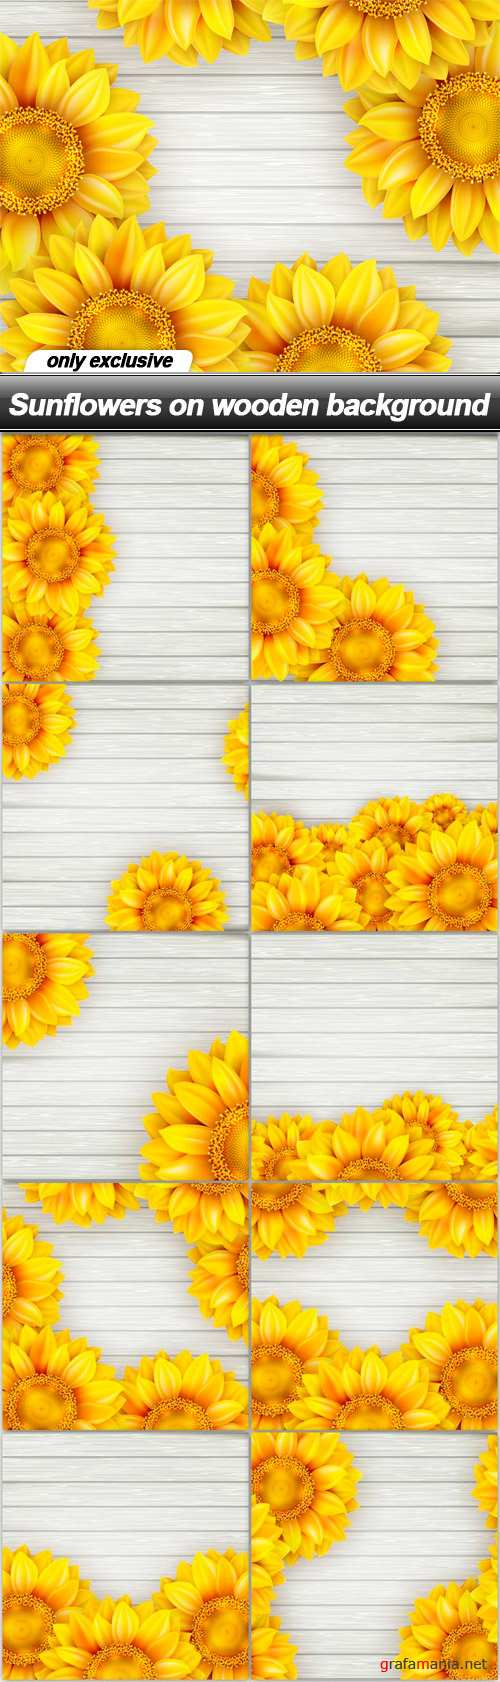 Sunflowers on wooden background - 10 EPS